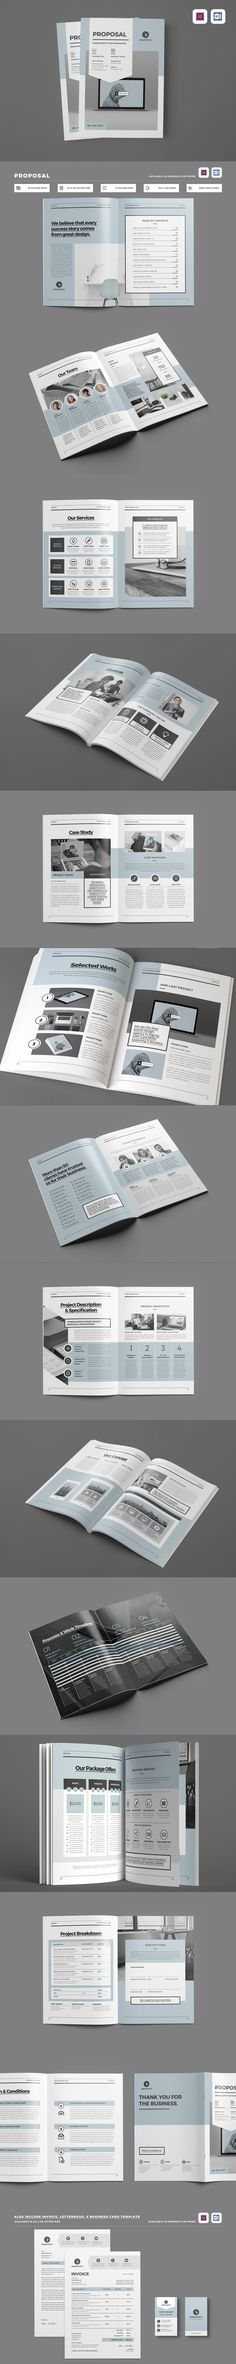 Clean & Professional Proposal Template With Include A4 & US letter Size - InDesign INDD